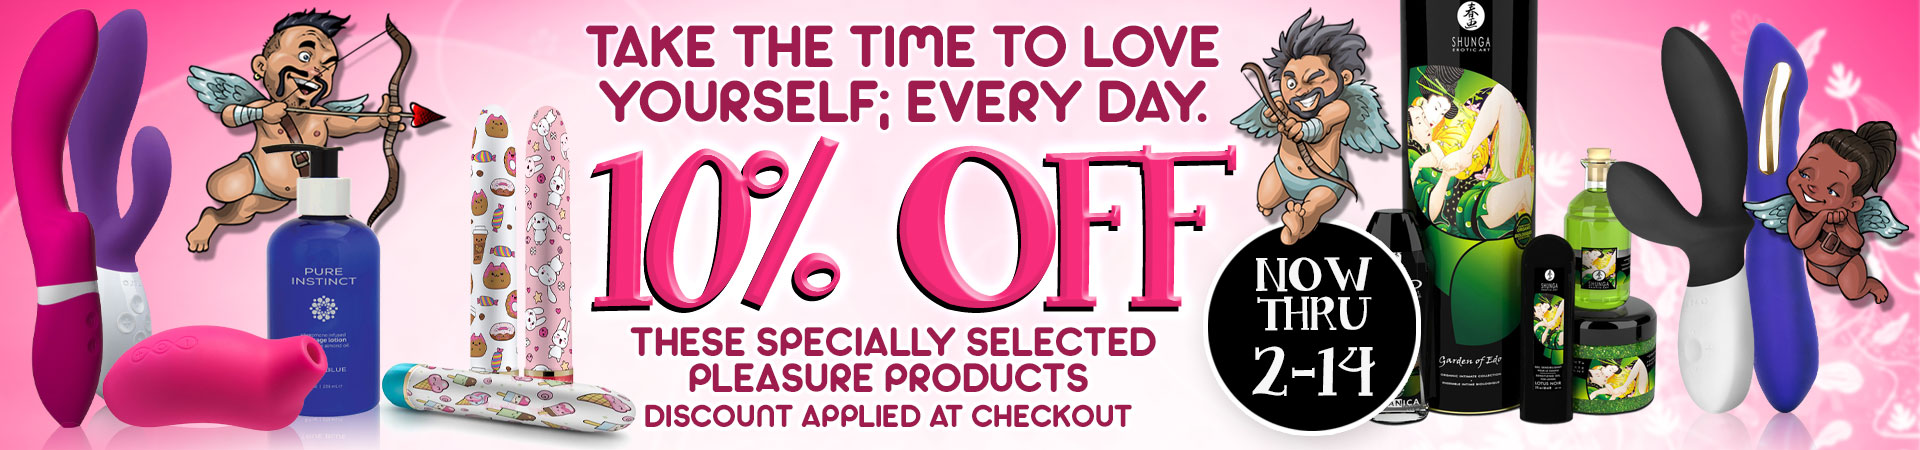 Take The Time To Love Yourself Every Day. Enjoy 10% Off Of These Specially Selected Pleasure Products - Now Thru 2/14 - Discount Applied At Checkout.